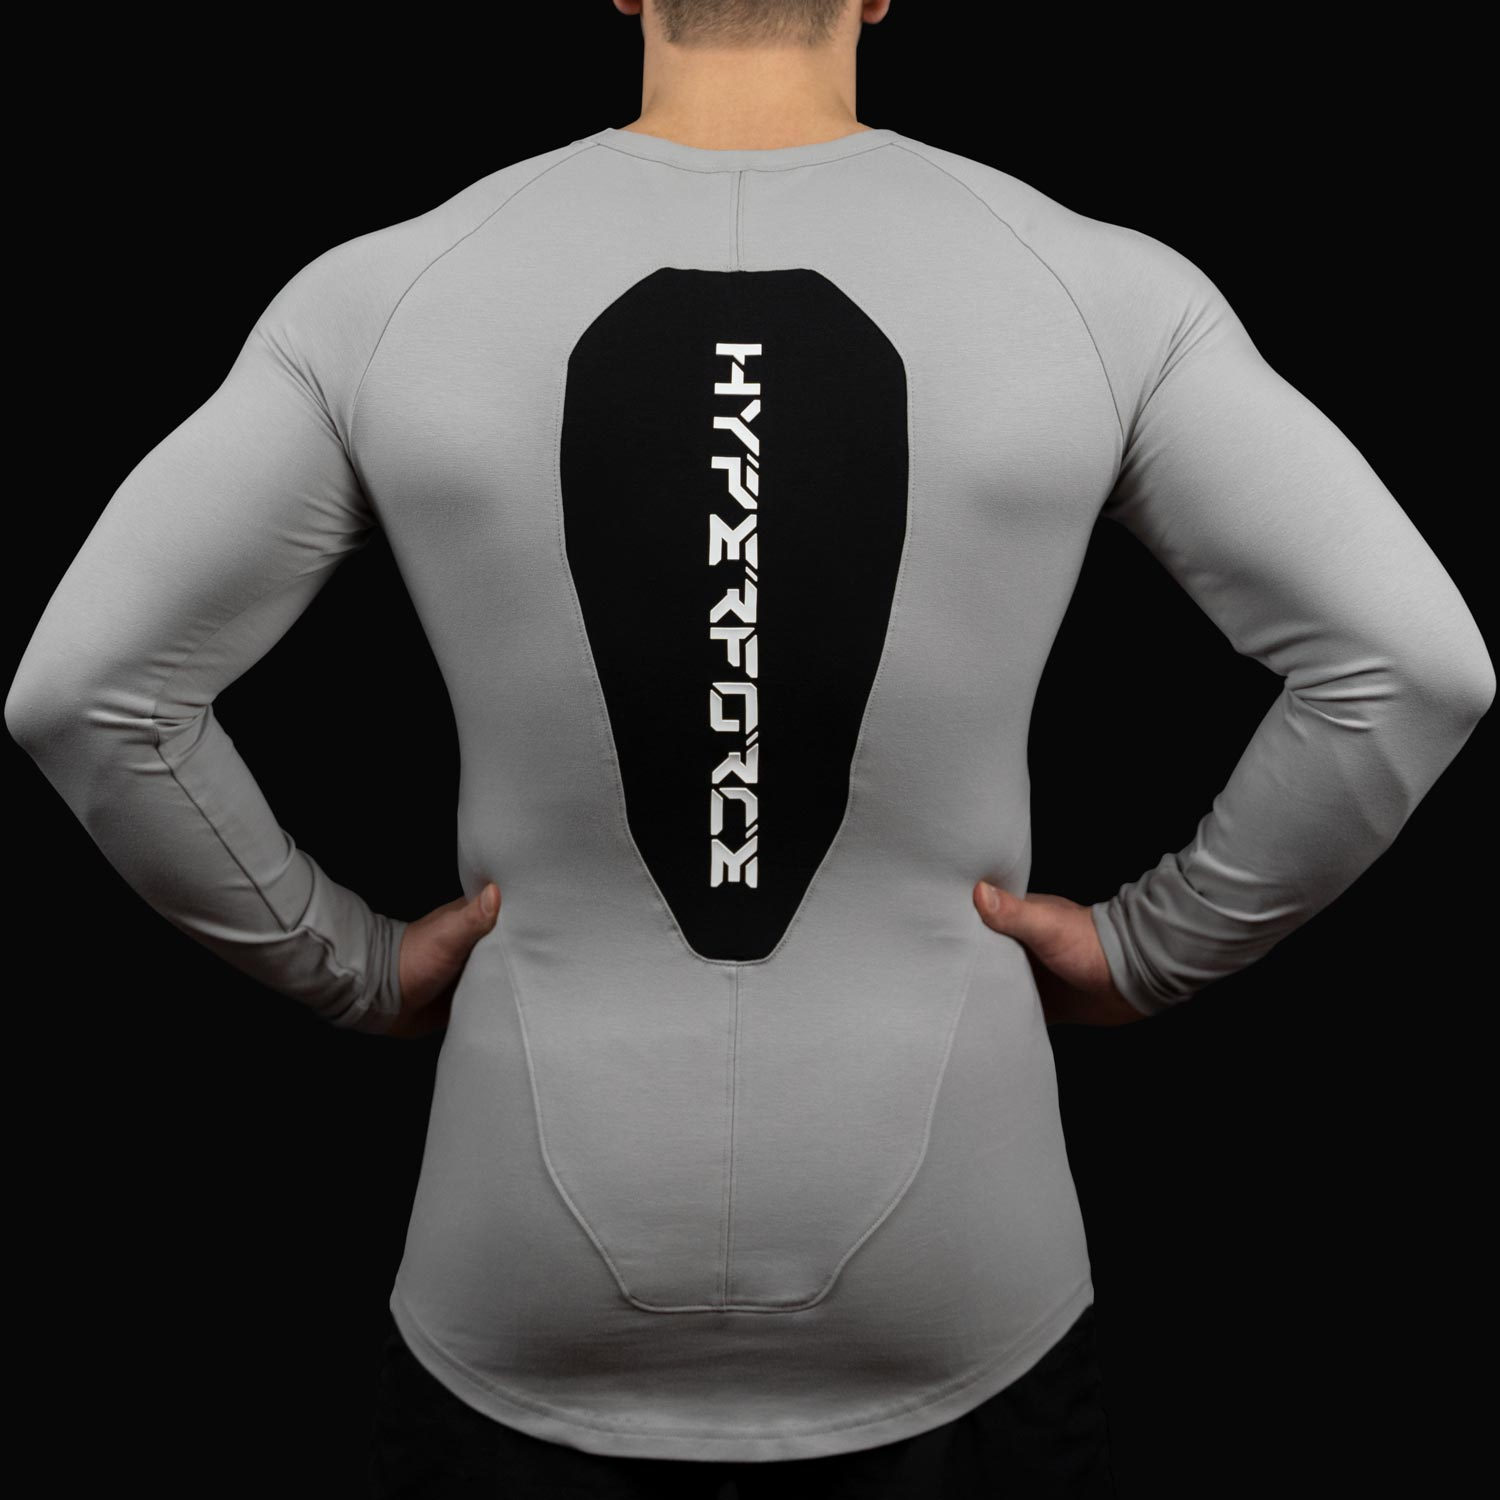 HYPERFORCE Apparel - Premium Muscle Fit Stretch Longsleeve for Men - Tight Fit - compression - Slim Fit - Tapered - aesthetic